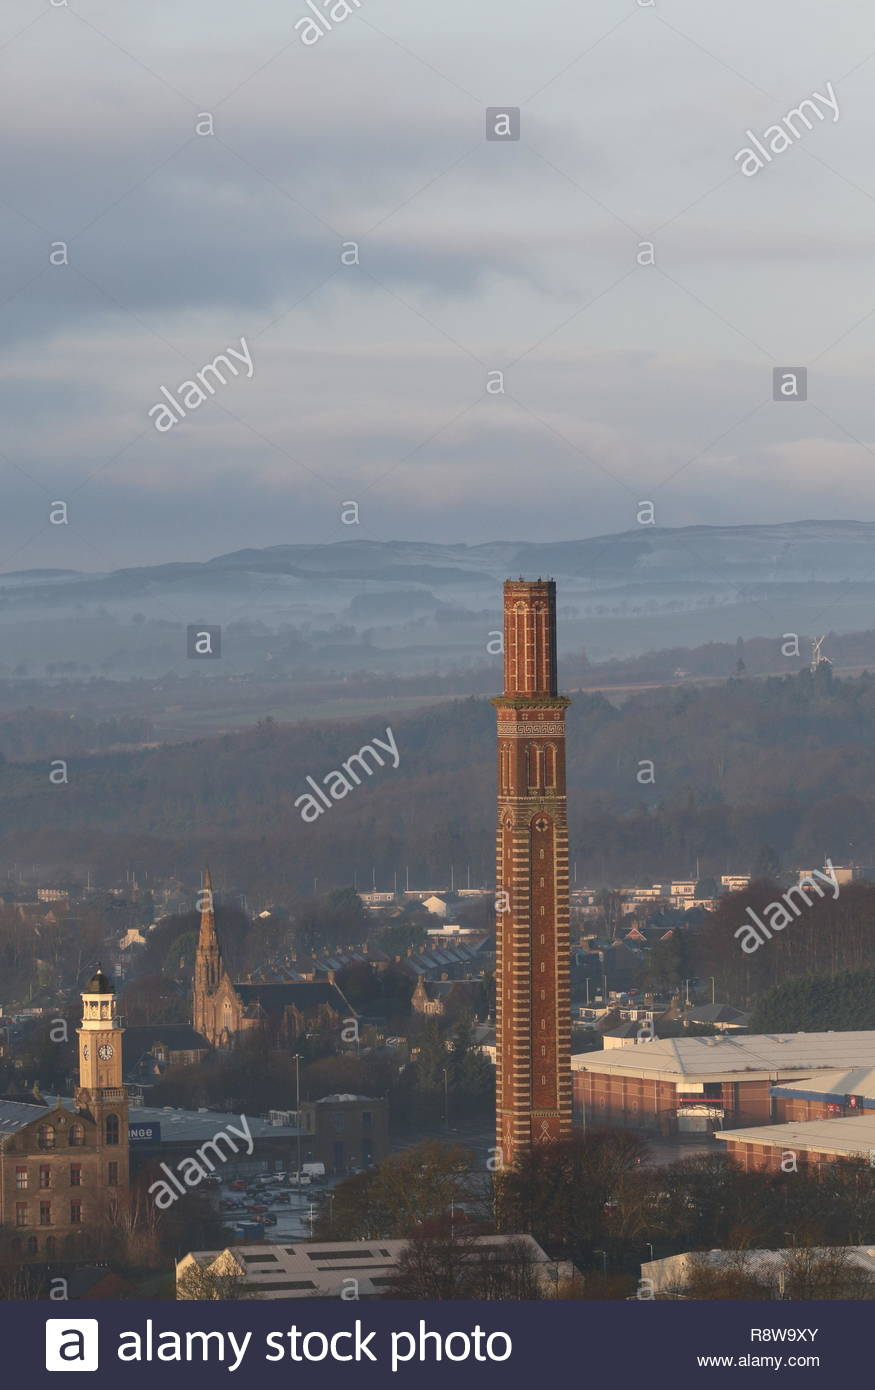 Elevated view of Cox's stack chimney Lochee Dundee Scotland  December 2018 - Stock Image